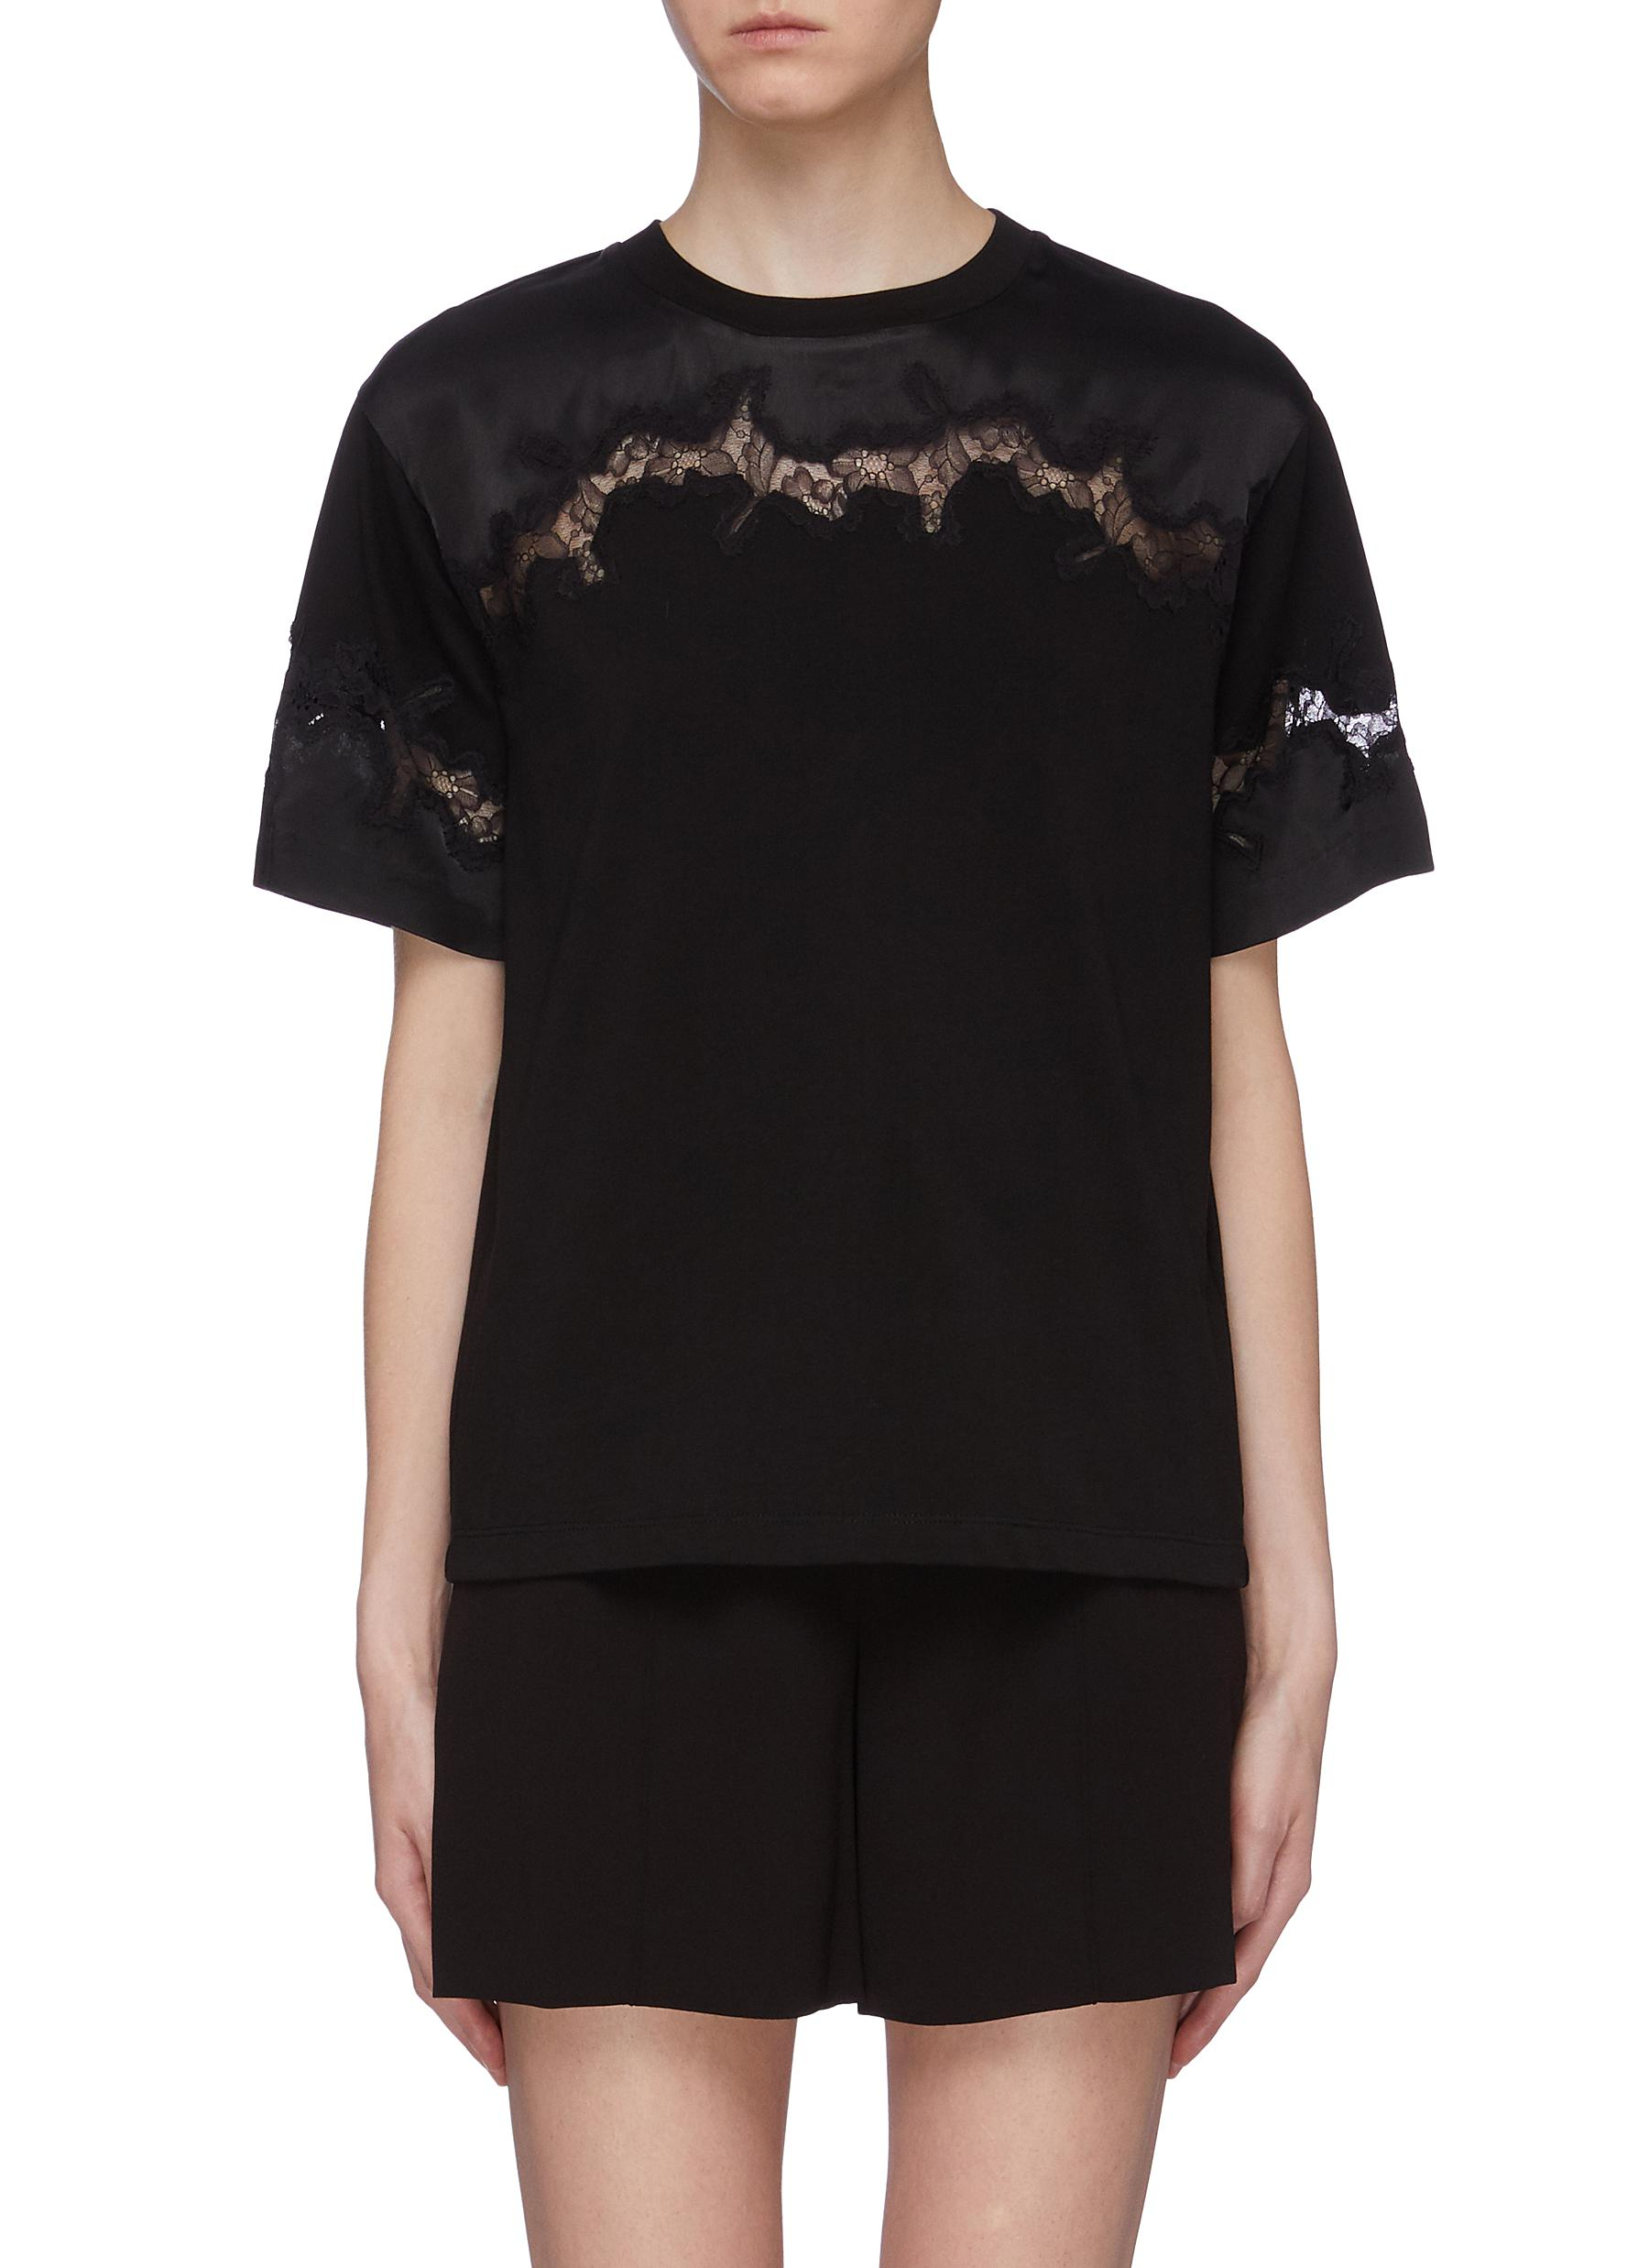 Chantilly lace insert T-shirt by 3.1 Phillip Lim